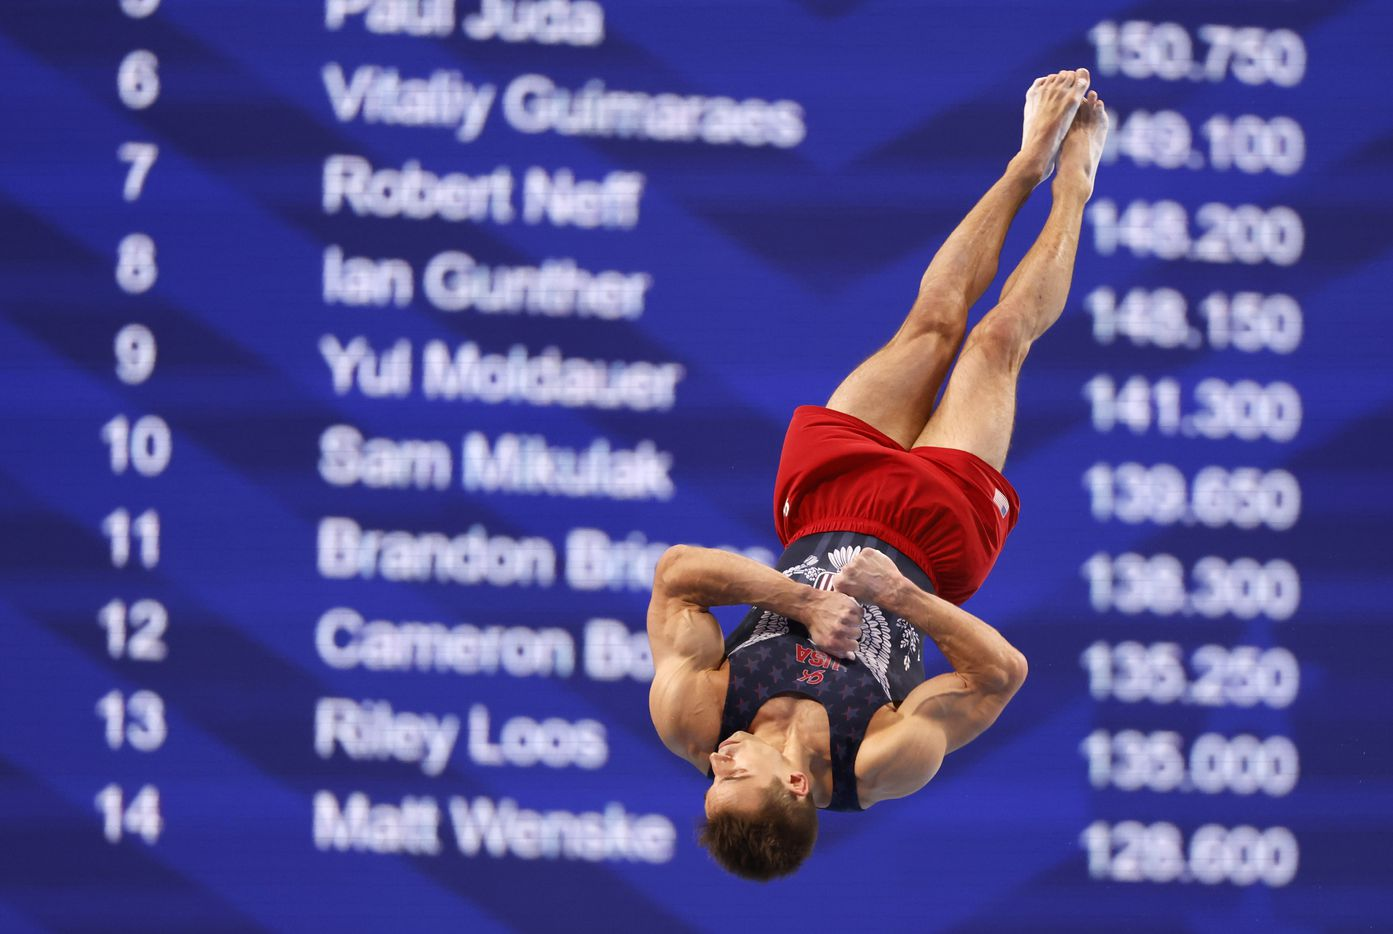 Sam Mikulak competes in the floor exercise during day 2 of the men's 2021 U.S. Olympic Trials at America's Center on Saturday, June 26, 2021 in St Louis, Missouri.(Vernon Bryant/The Dallas Morning News)